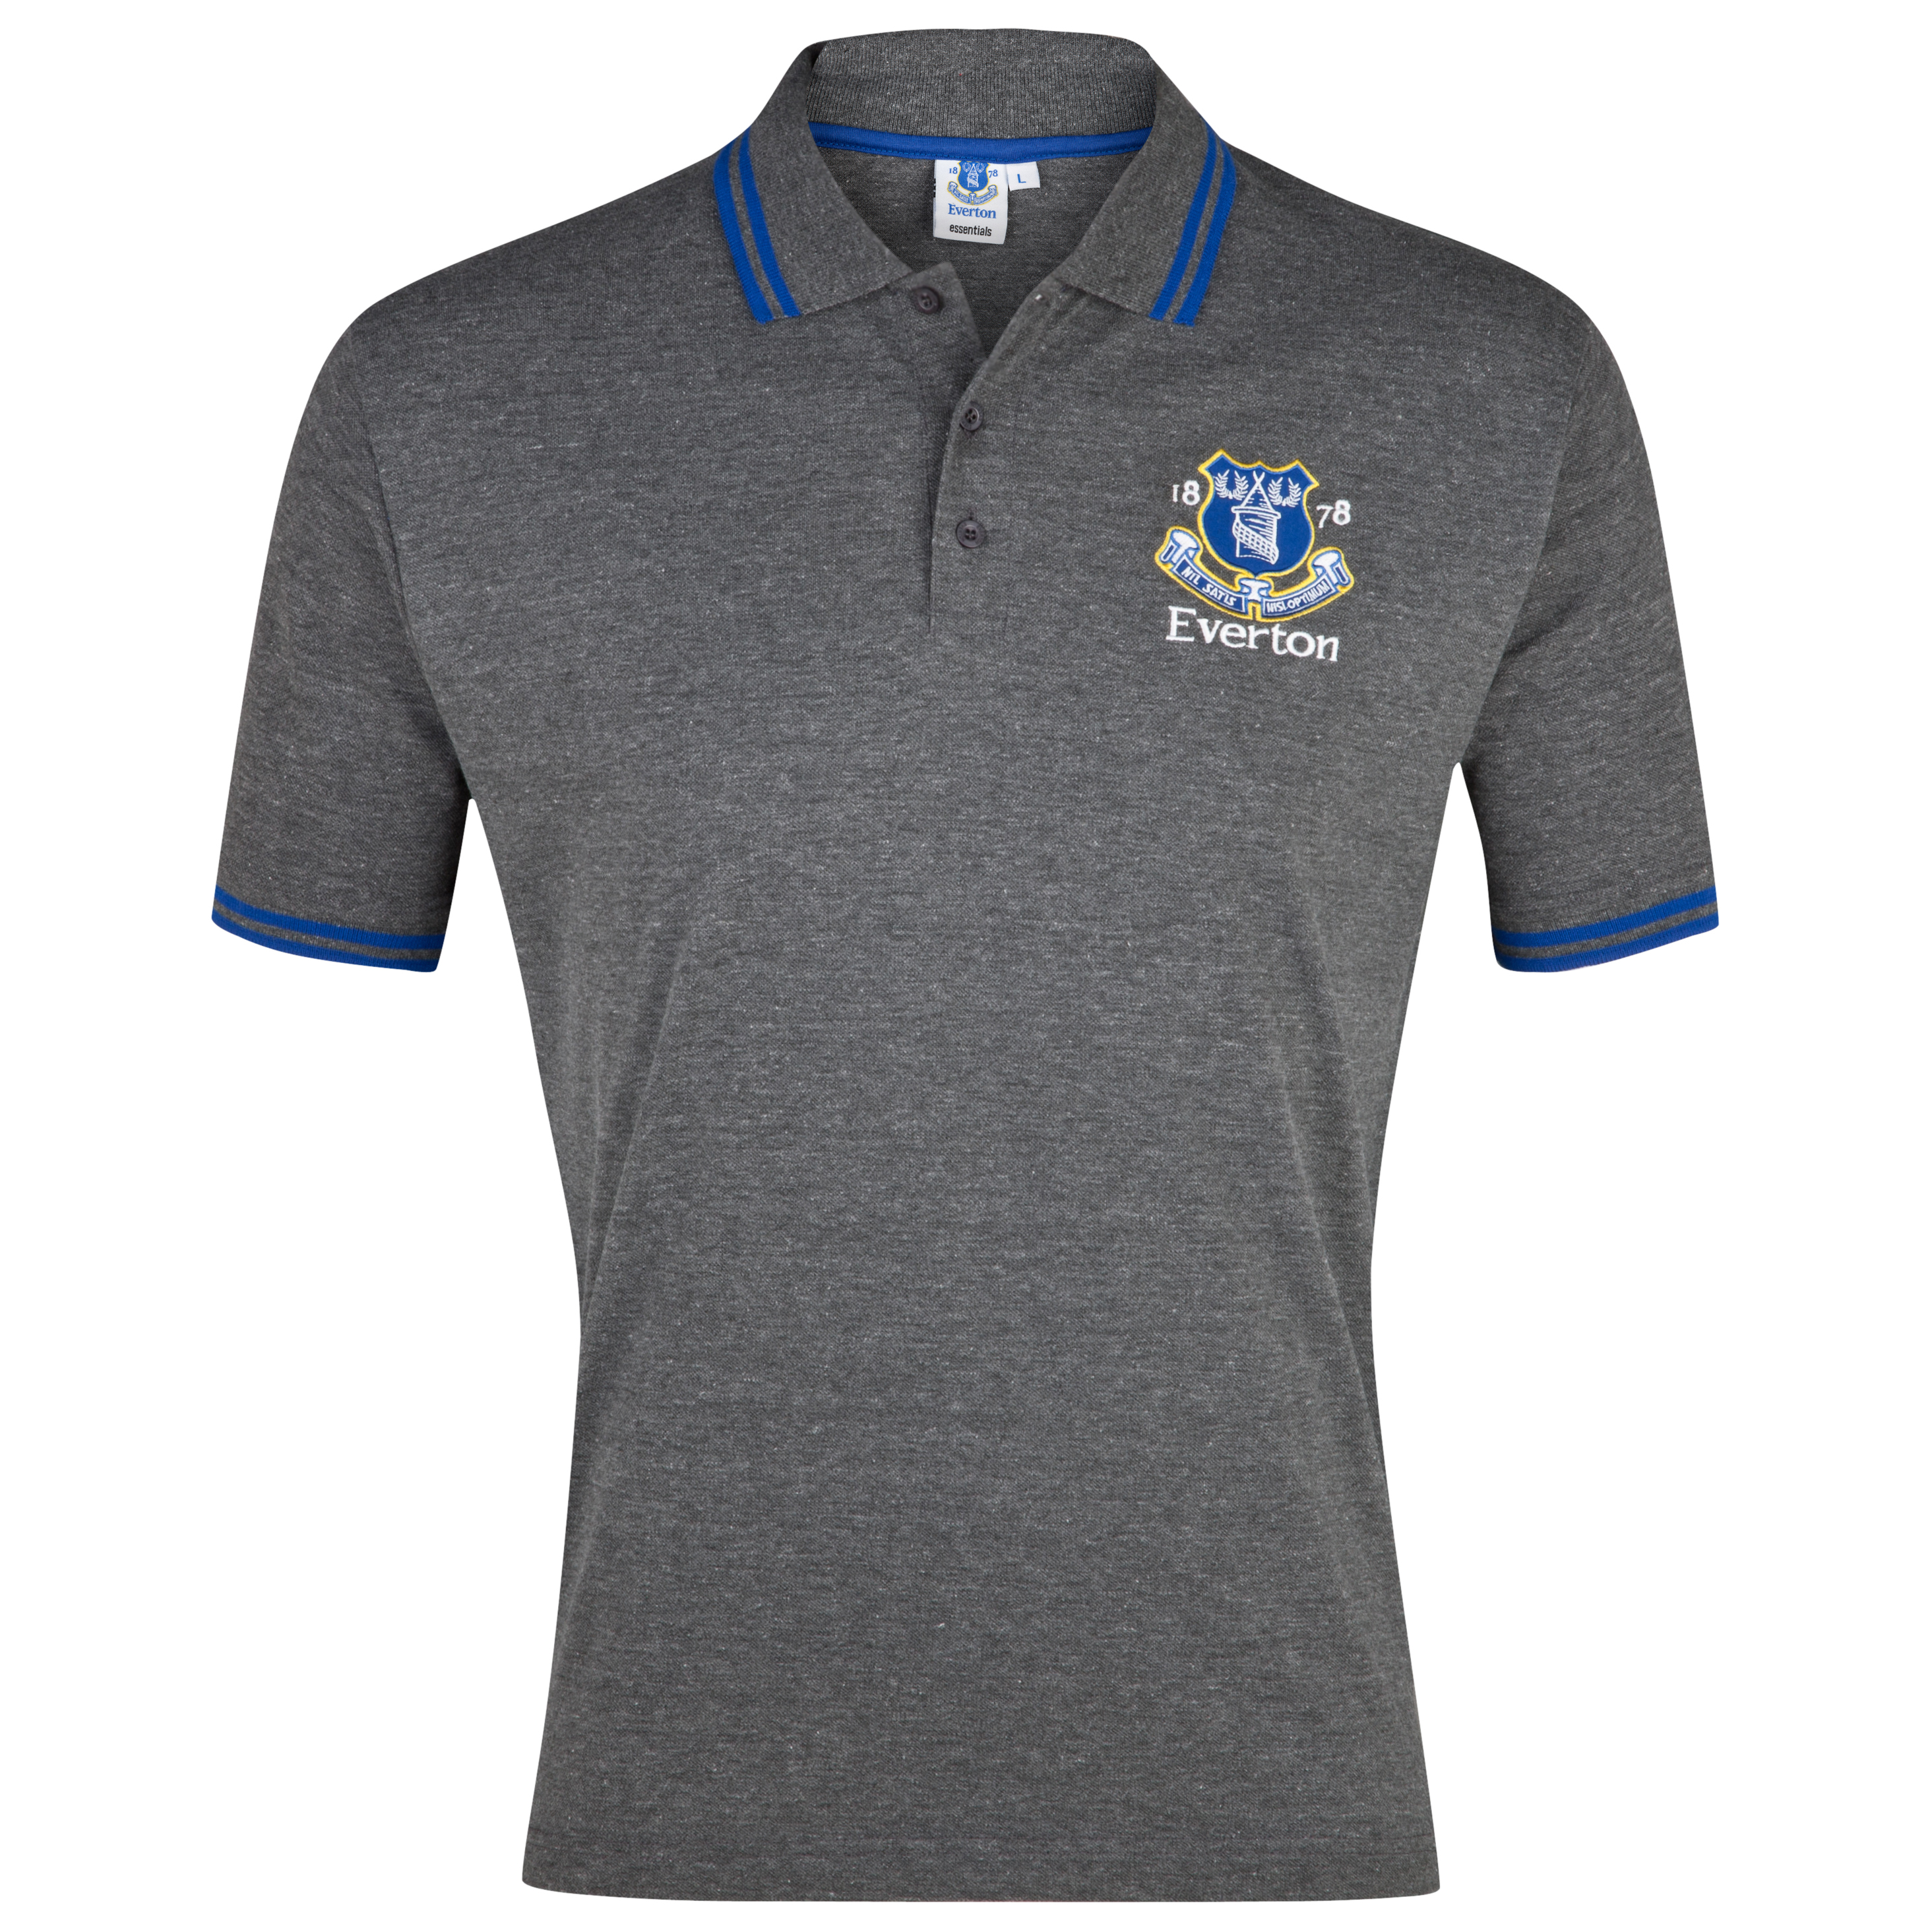 Everton Essential Evolve Crest Polo Top - Charcoal Marl